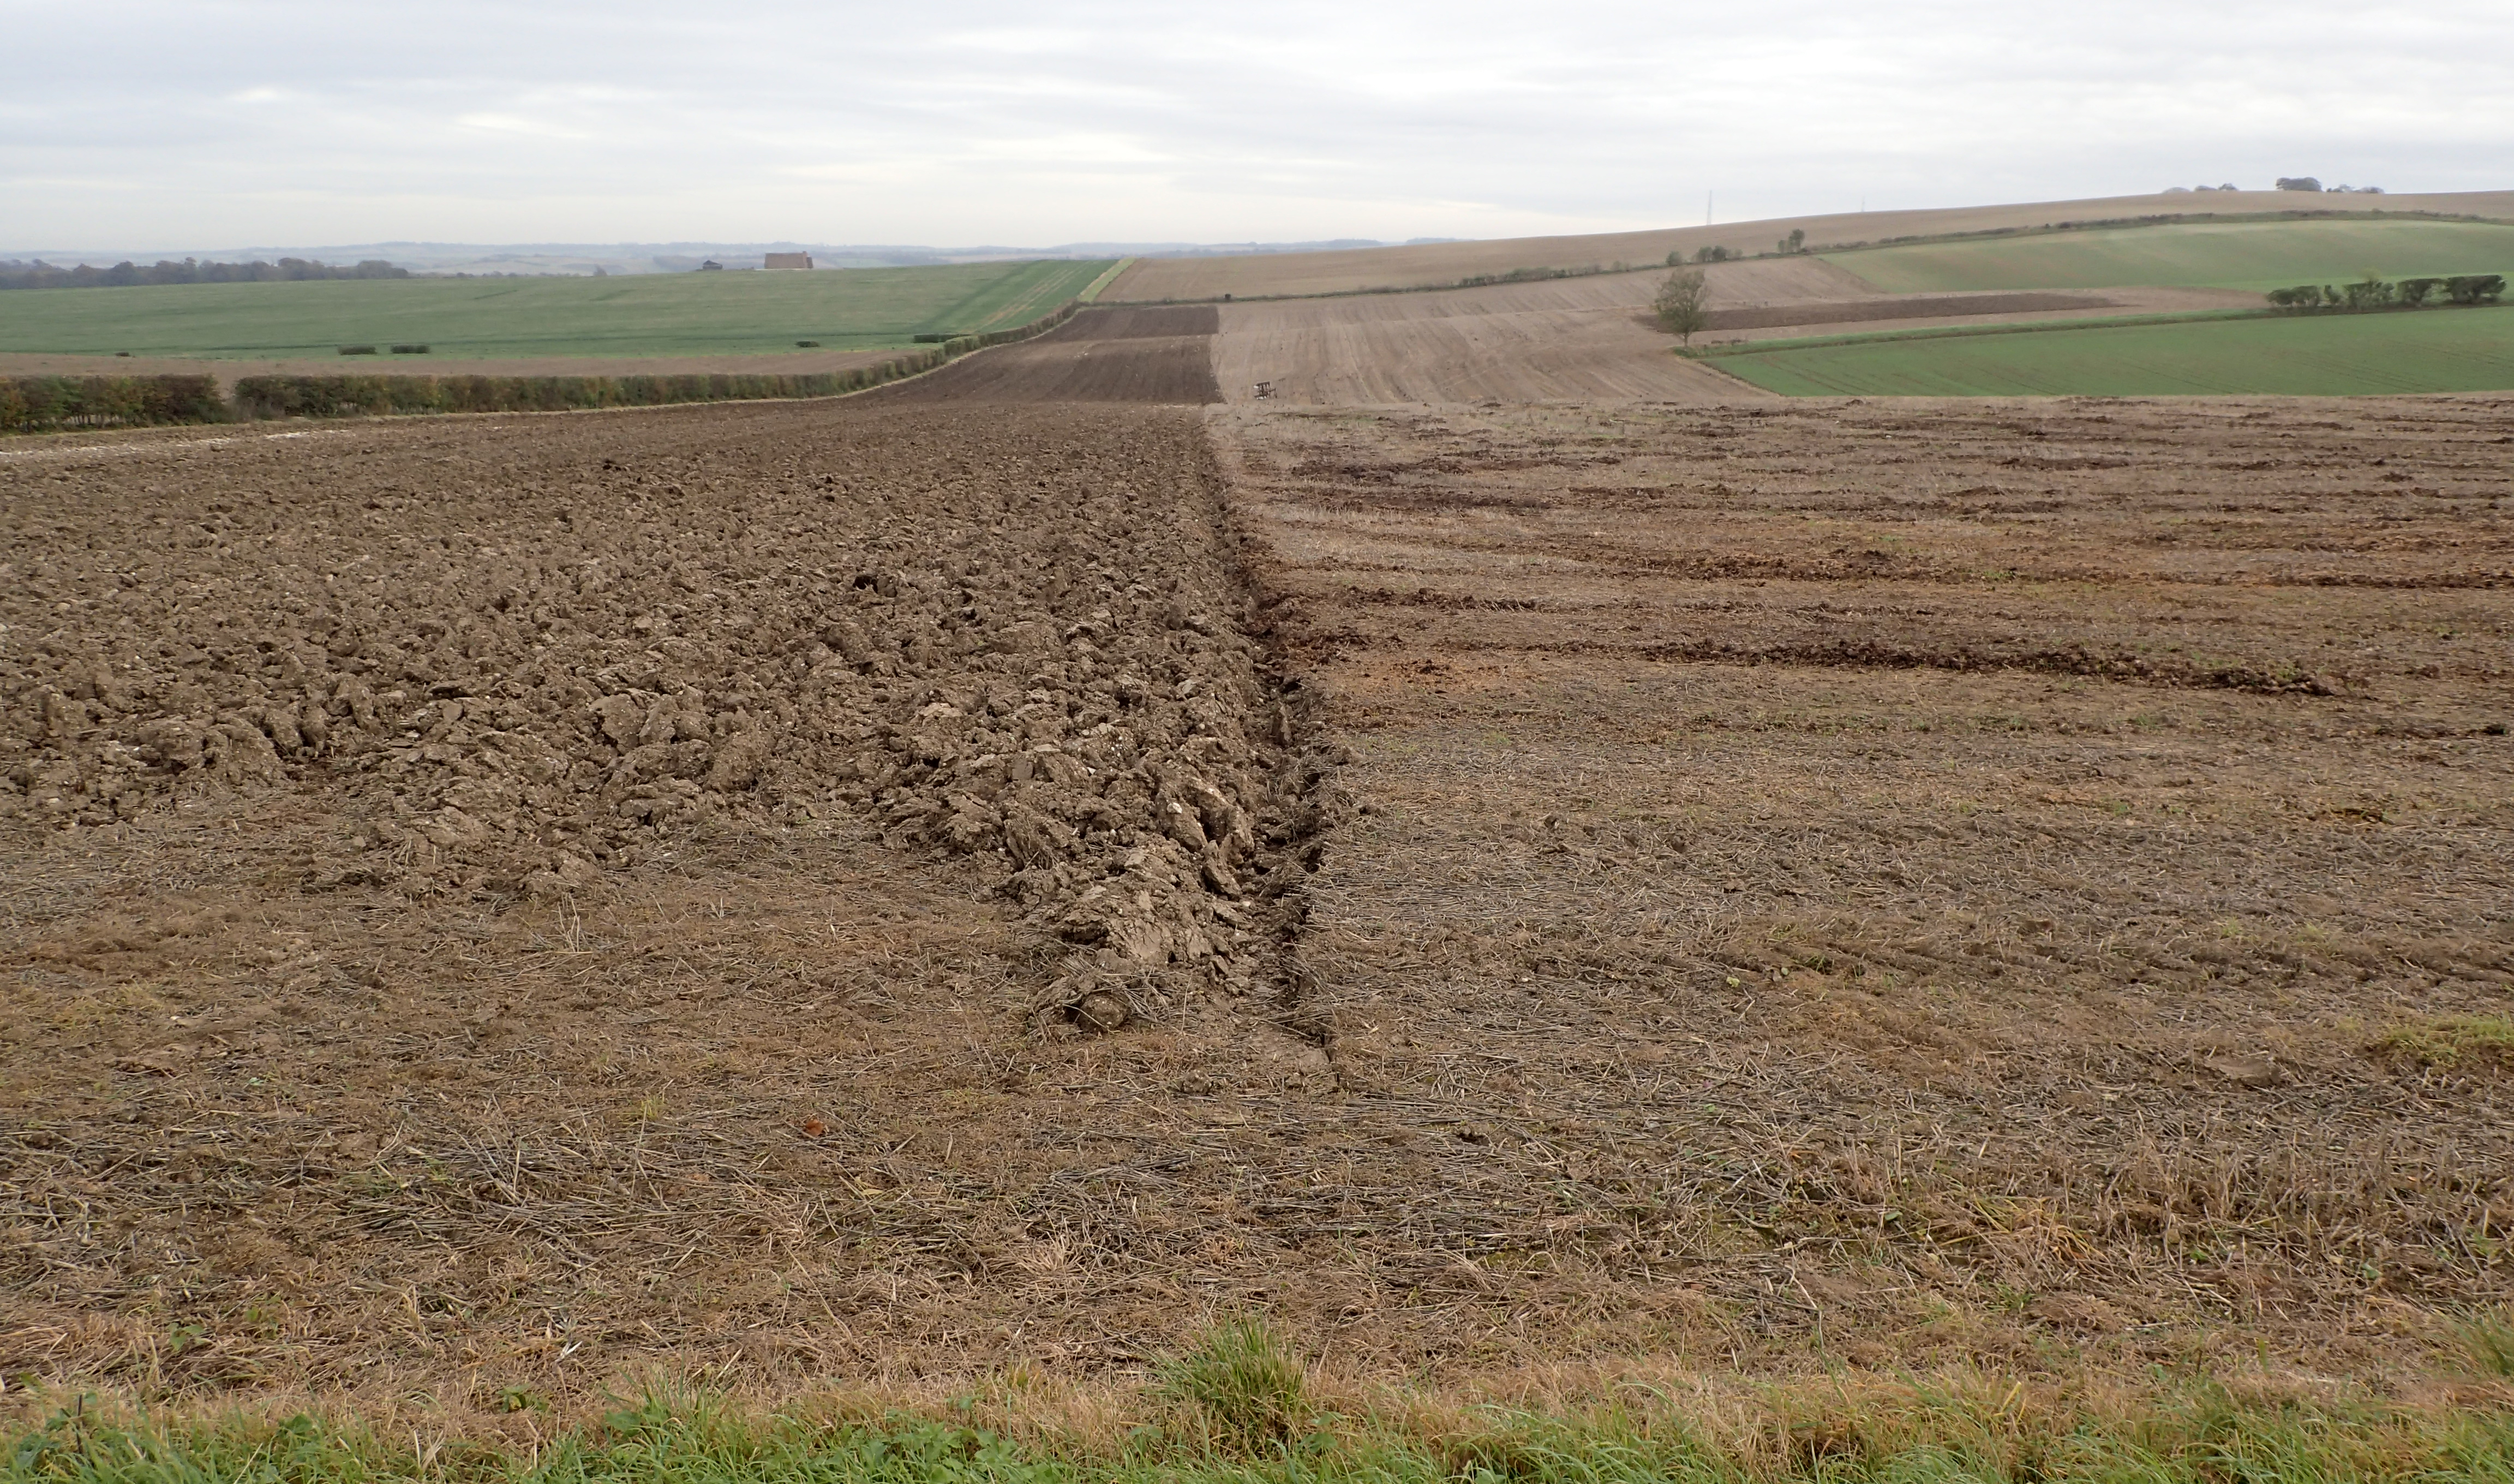 The middle section of the walk saw my trail crossing a mainly agricultural landscape. Farm vehicles were much in evidence and the fields were often being worked on